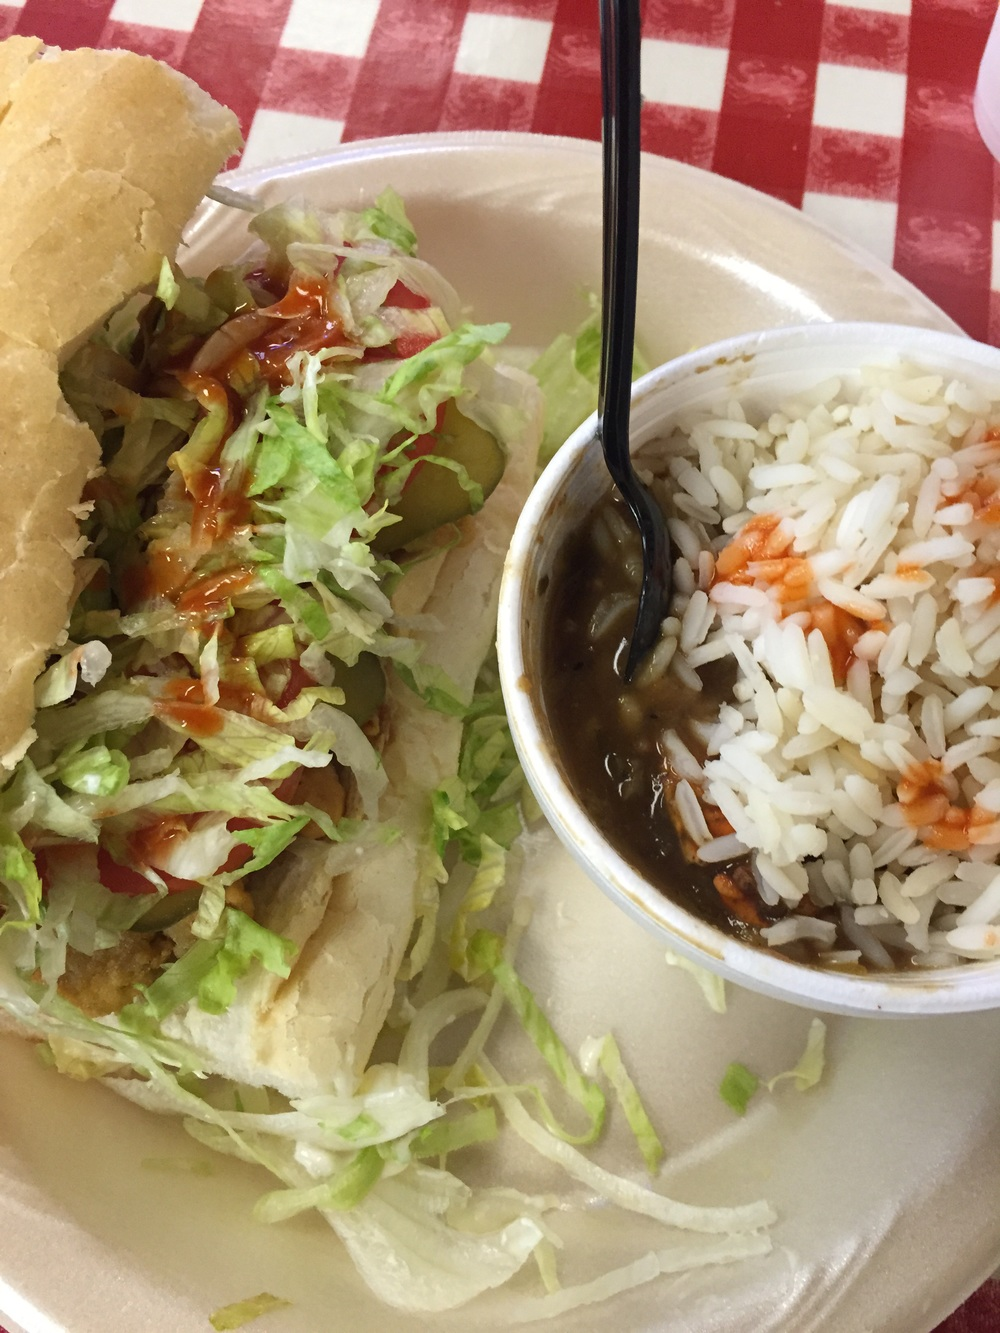 Crawfish po'boy and seafood gumbo.